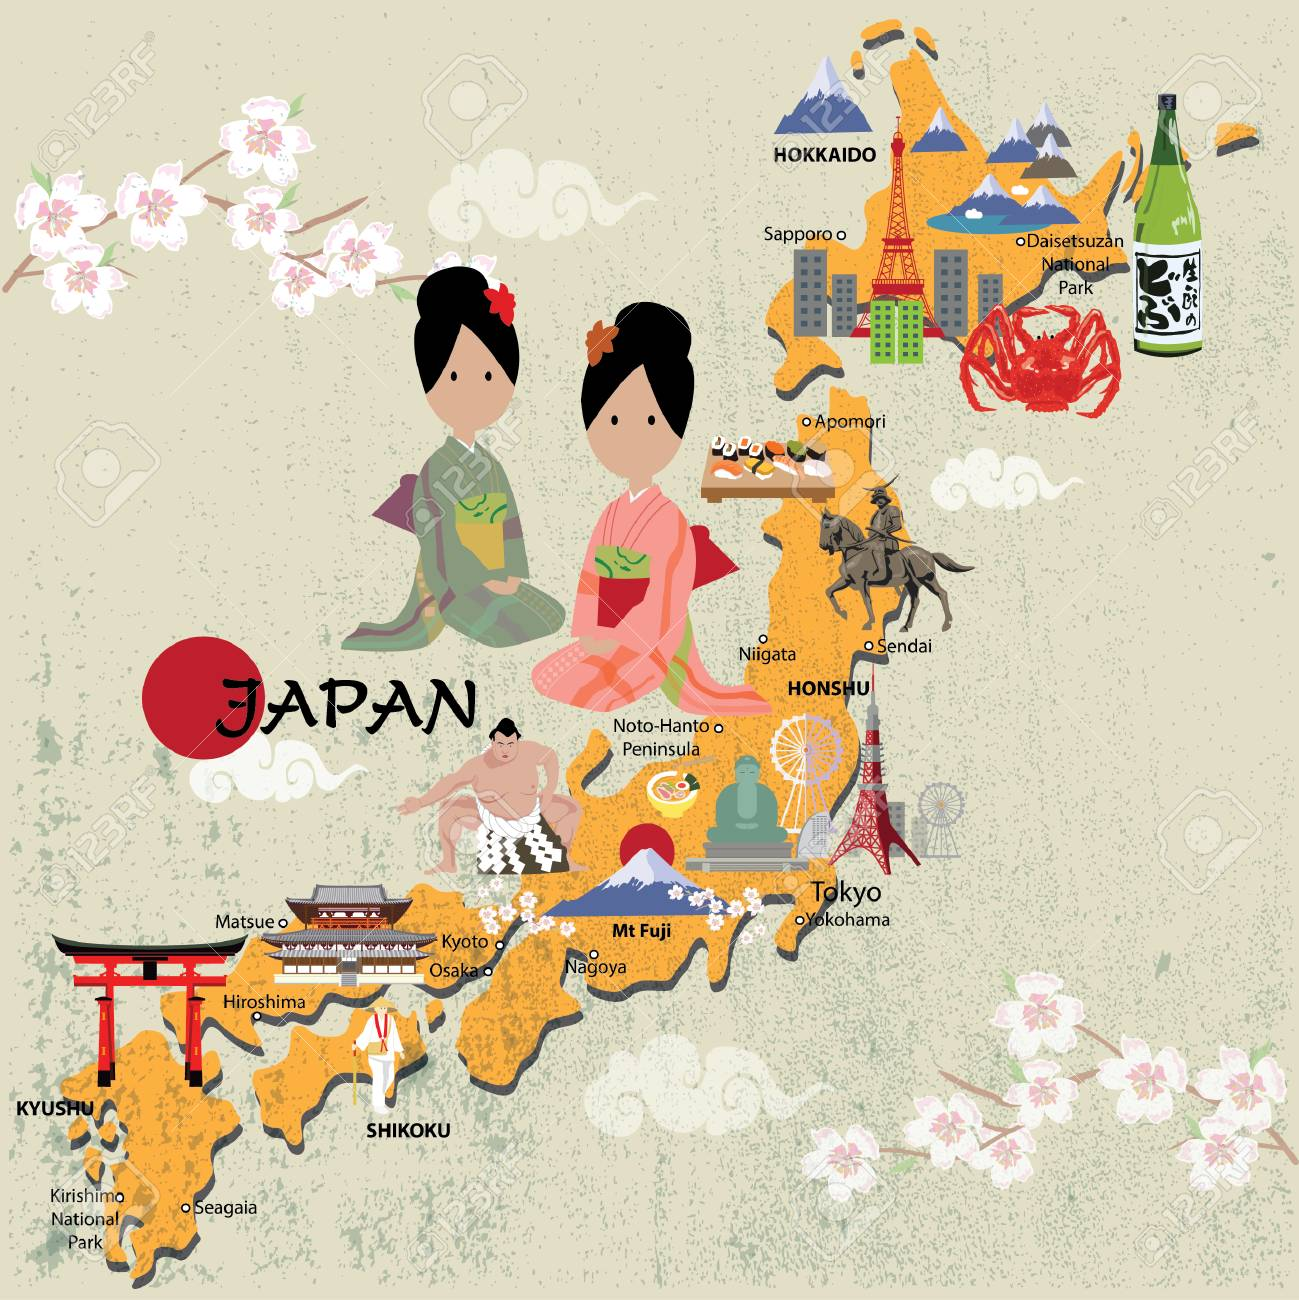 Japan map illustrator on internet map, world map, word map, buenos aires map, print map,